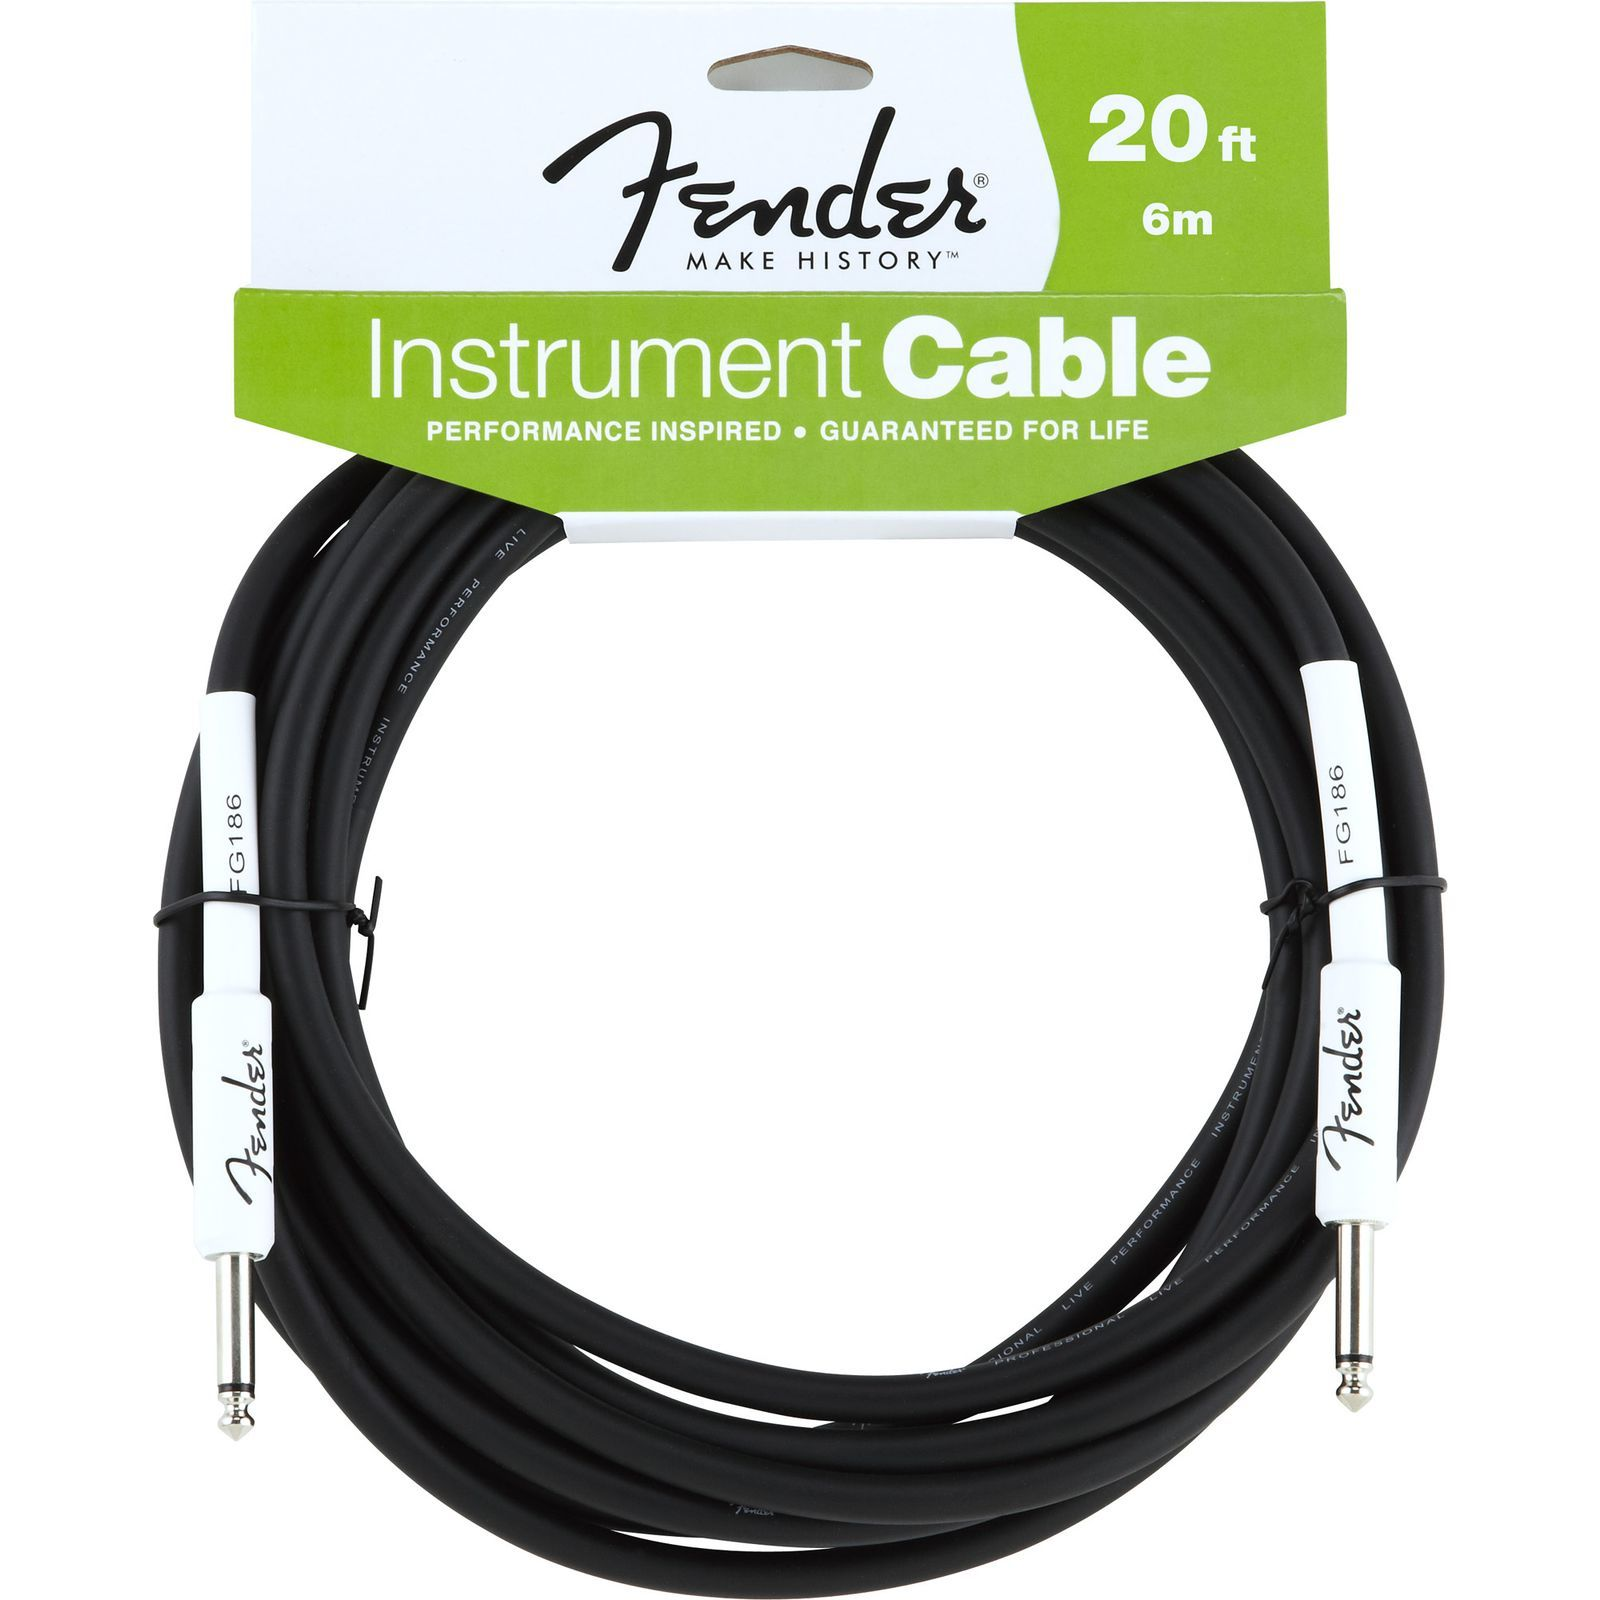 Fender Performance Cable 6m BLK Black, Kli/Kli Produktbild